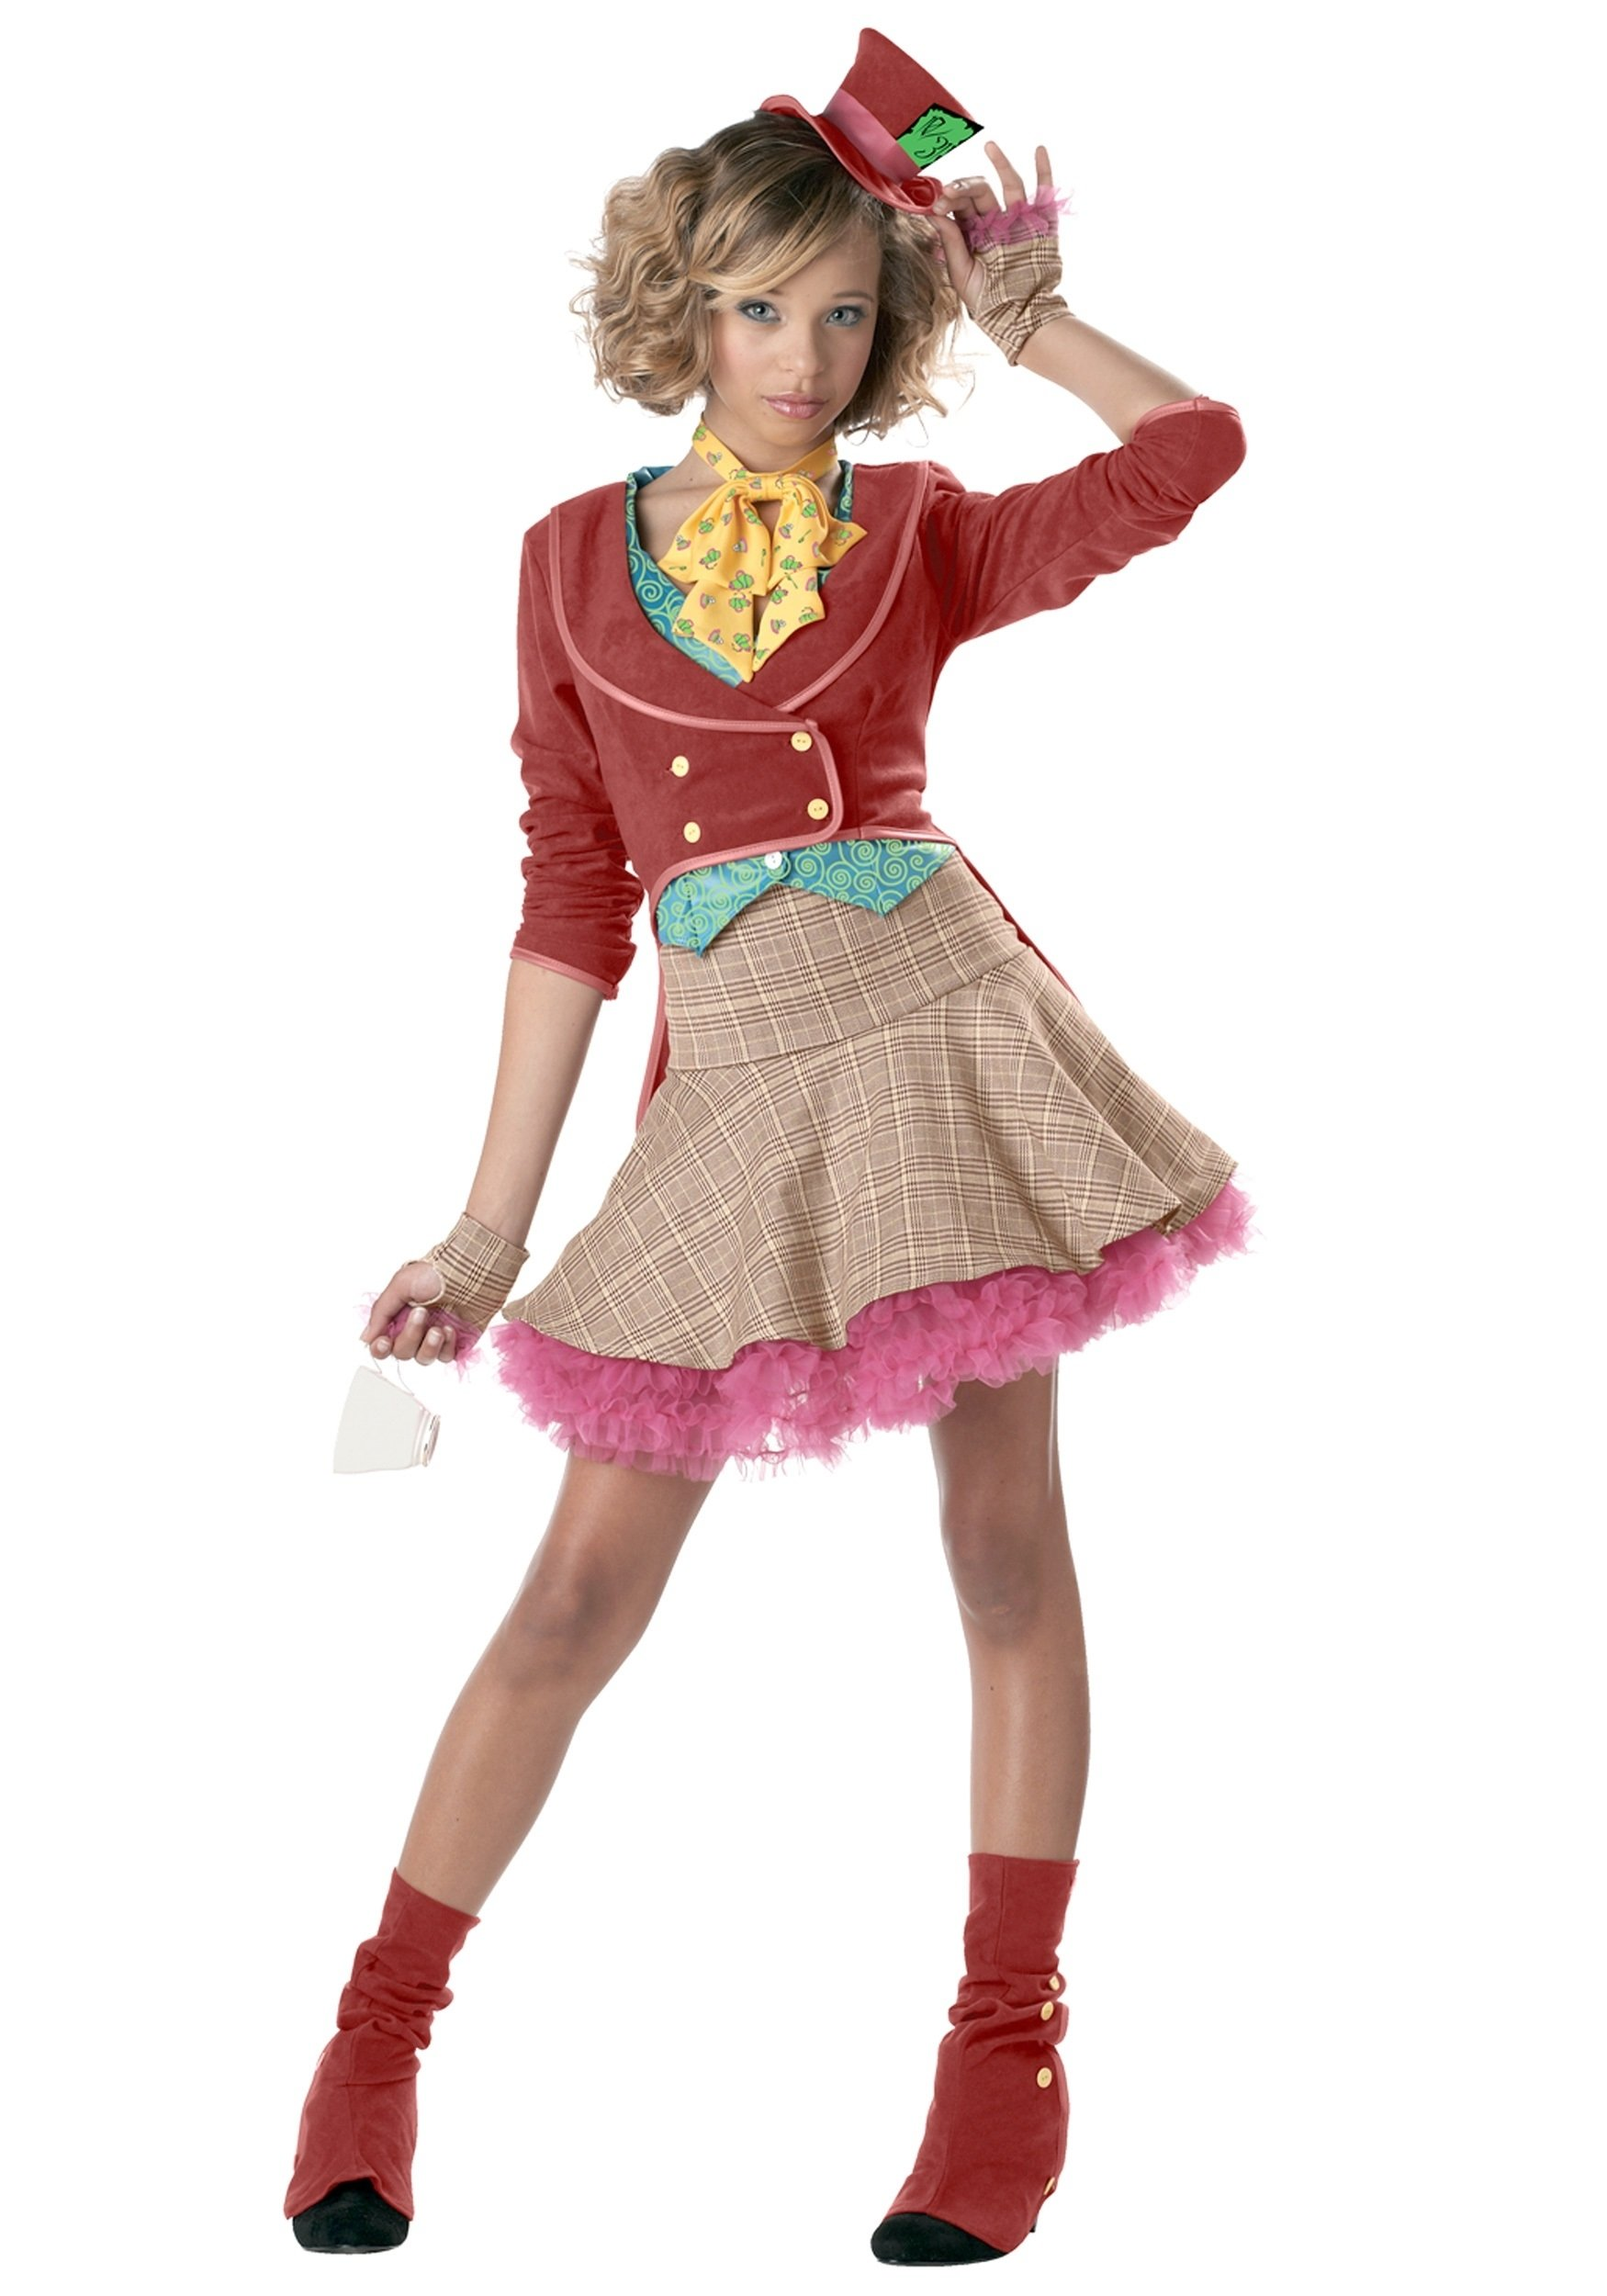 10 Most Recommended Halloween Costumes Teenage Girls Ideas teen girls mad hatter costume 9 2020